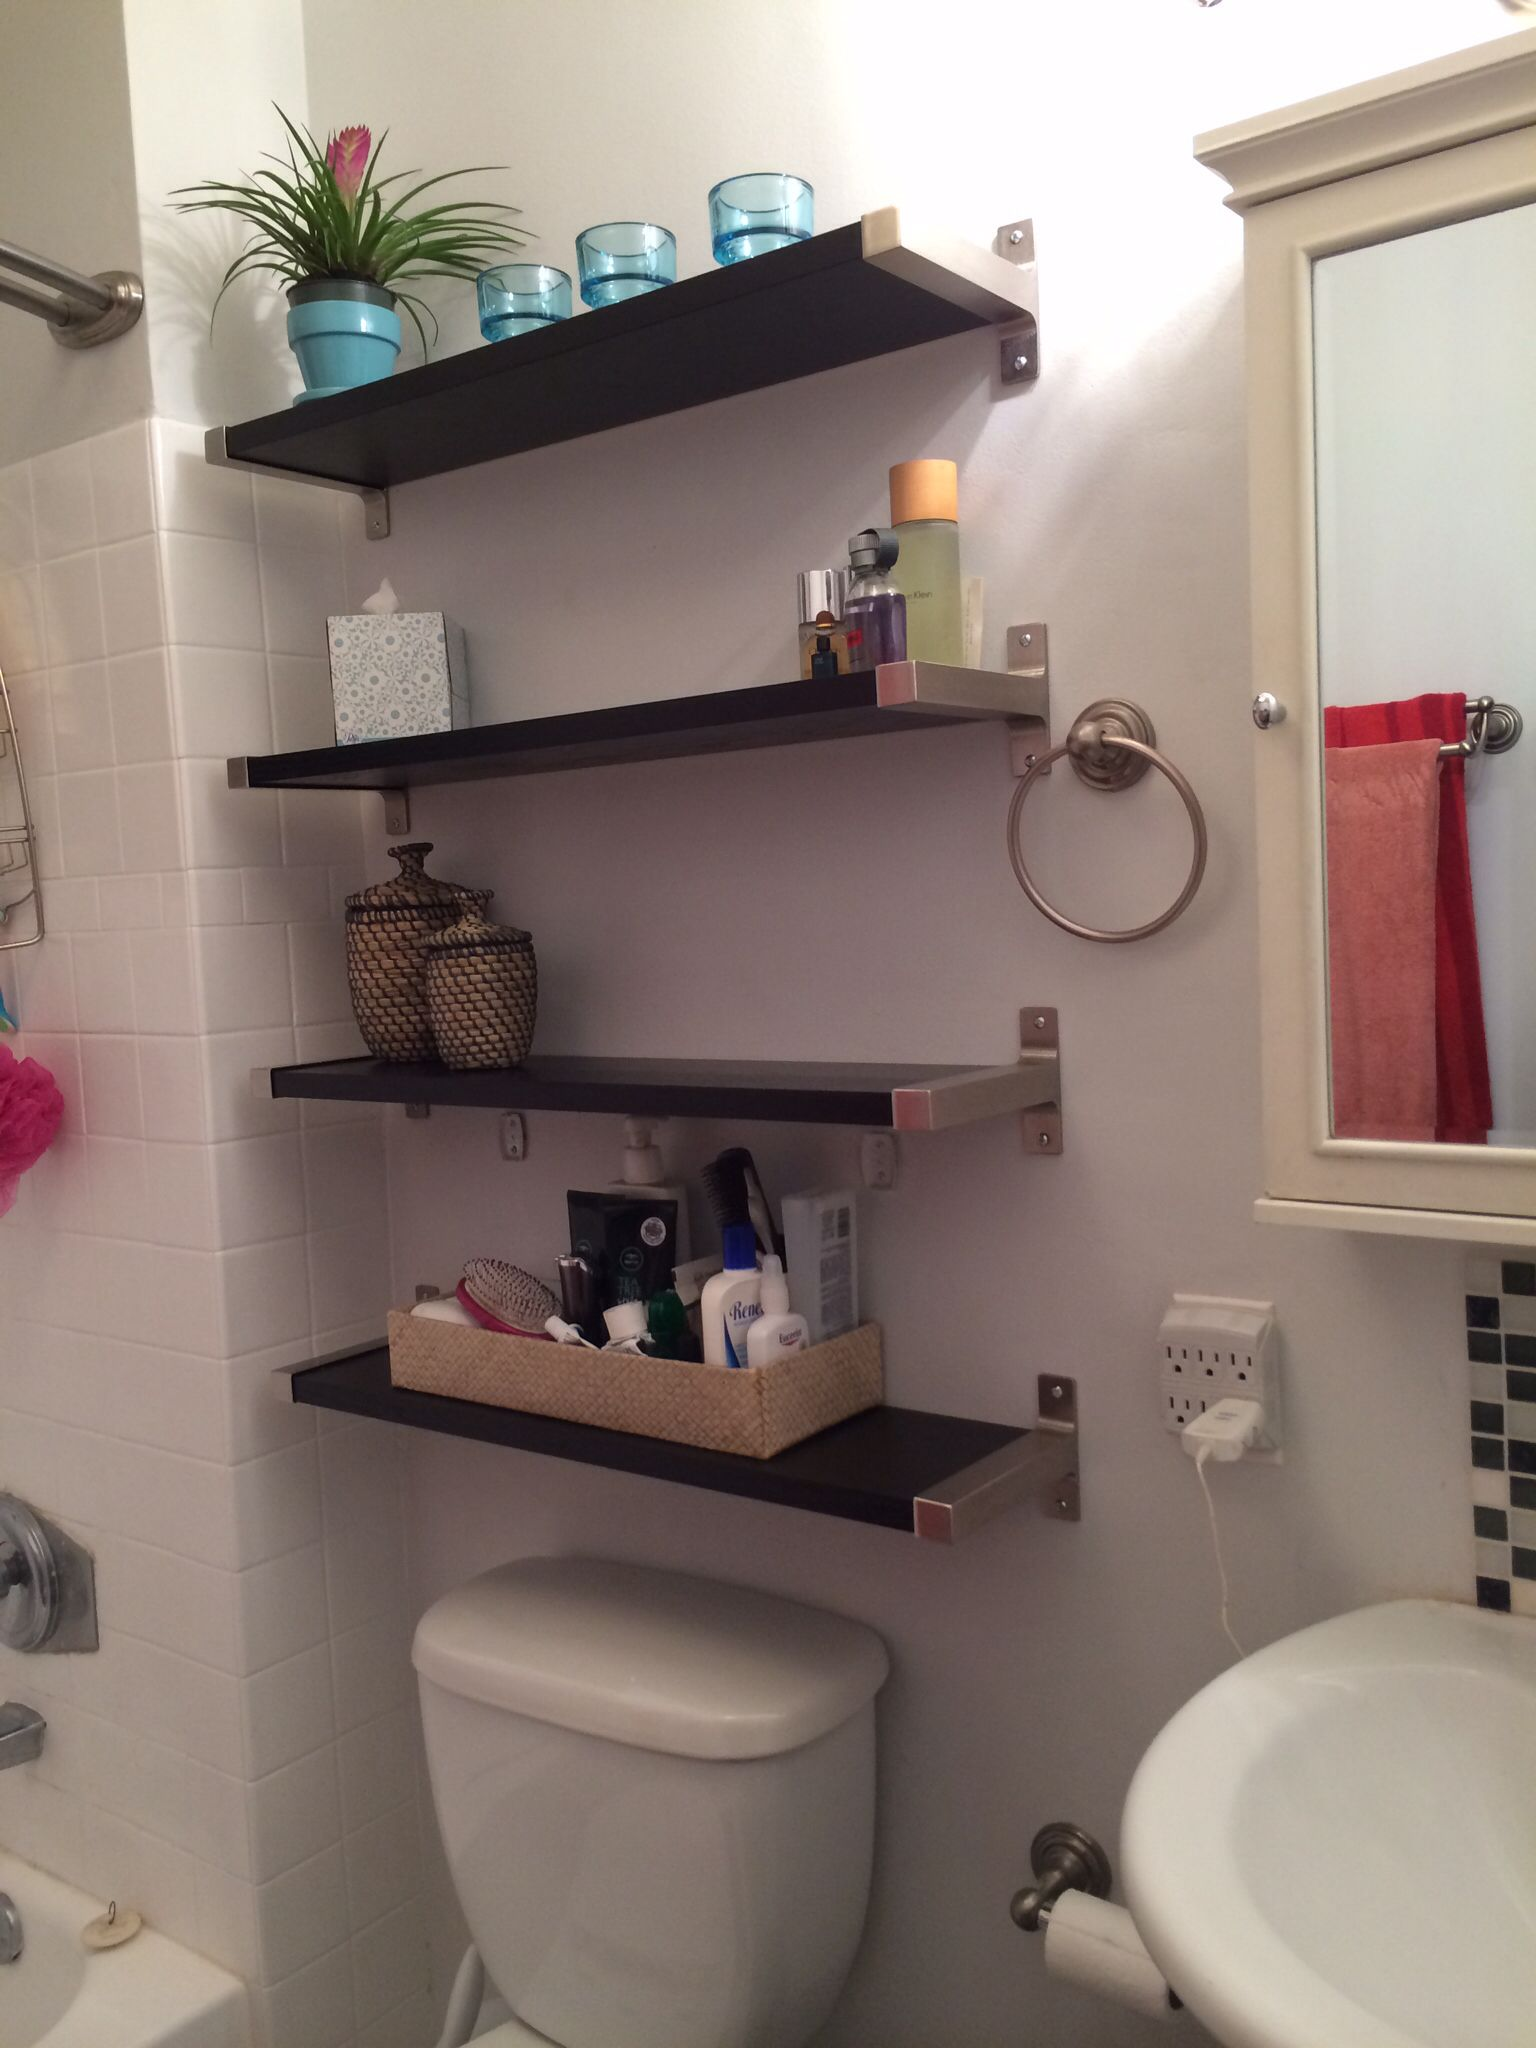 Small bathroom solutions   Ikea shelves. Small bathroom solutions   Ikea shelves   Bathroom   Pinterest